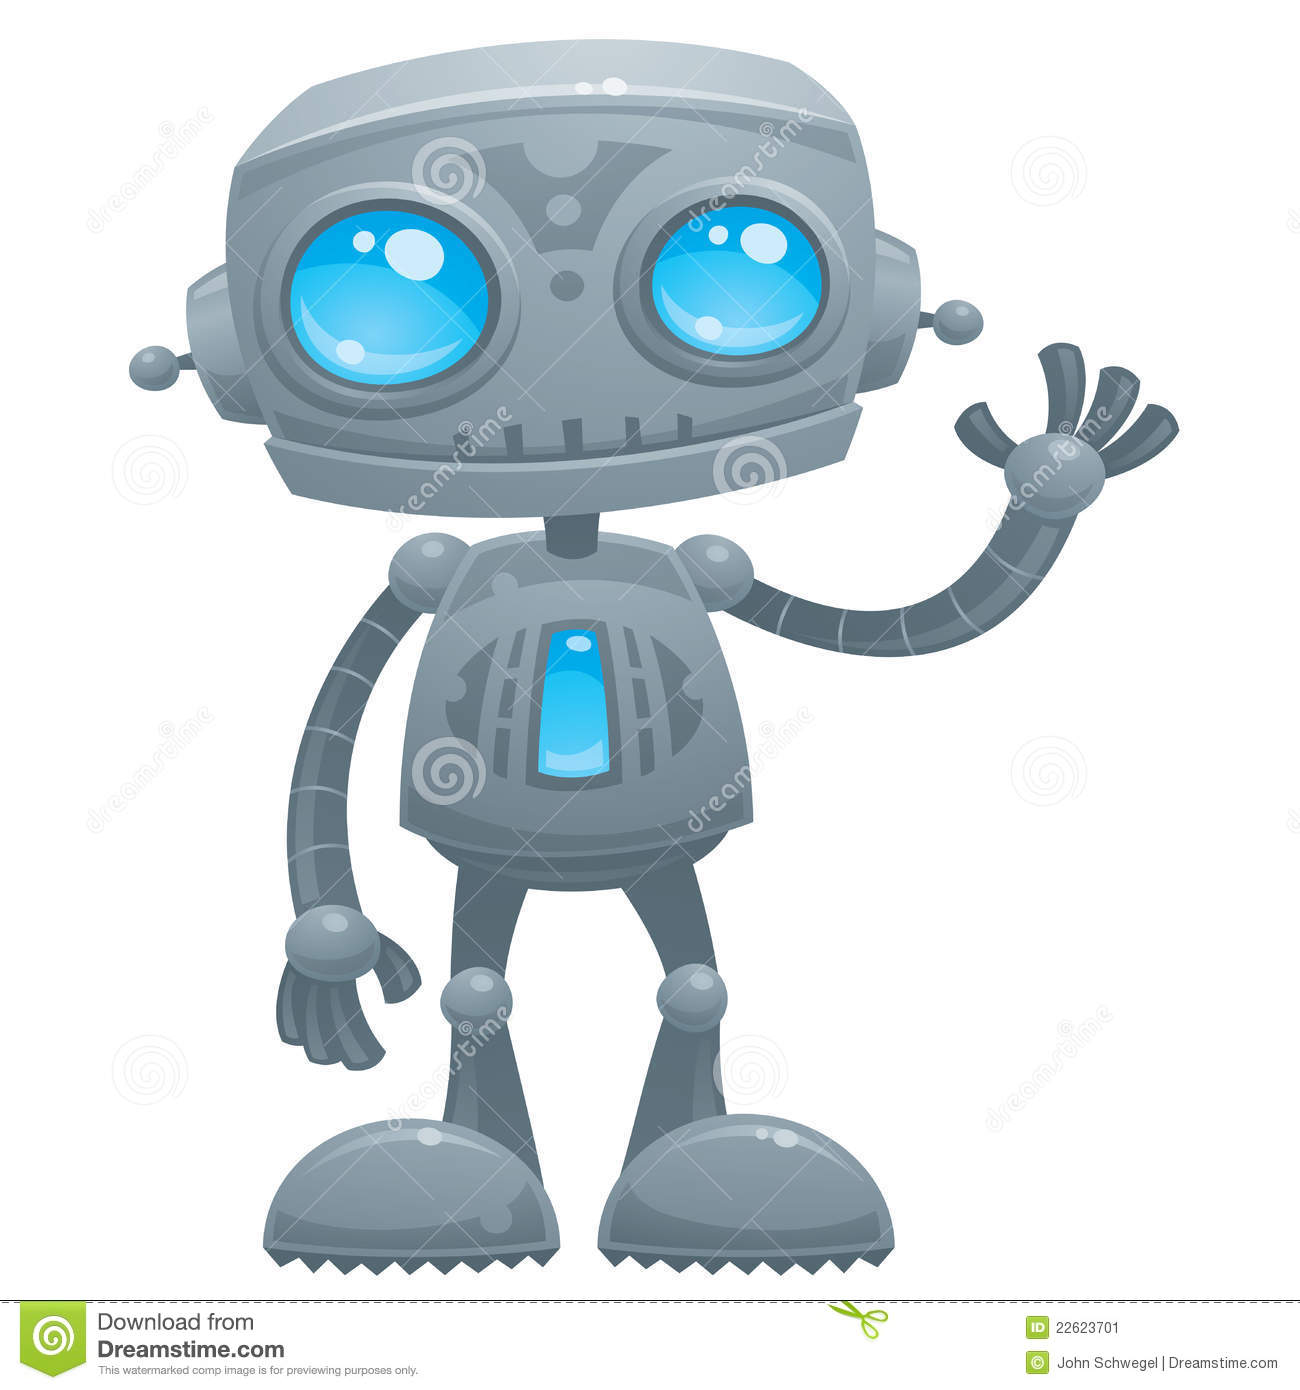 ... illustration of a cute and friendly robot with blue eyes waving hello